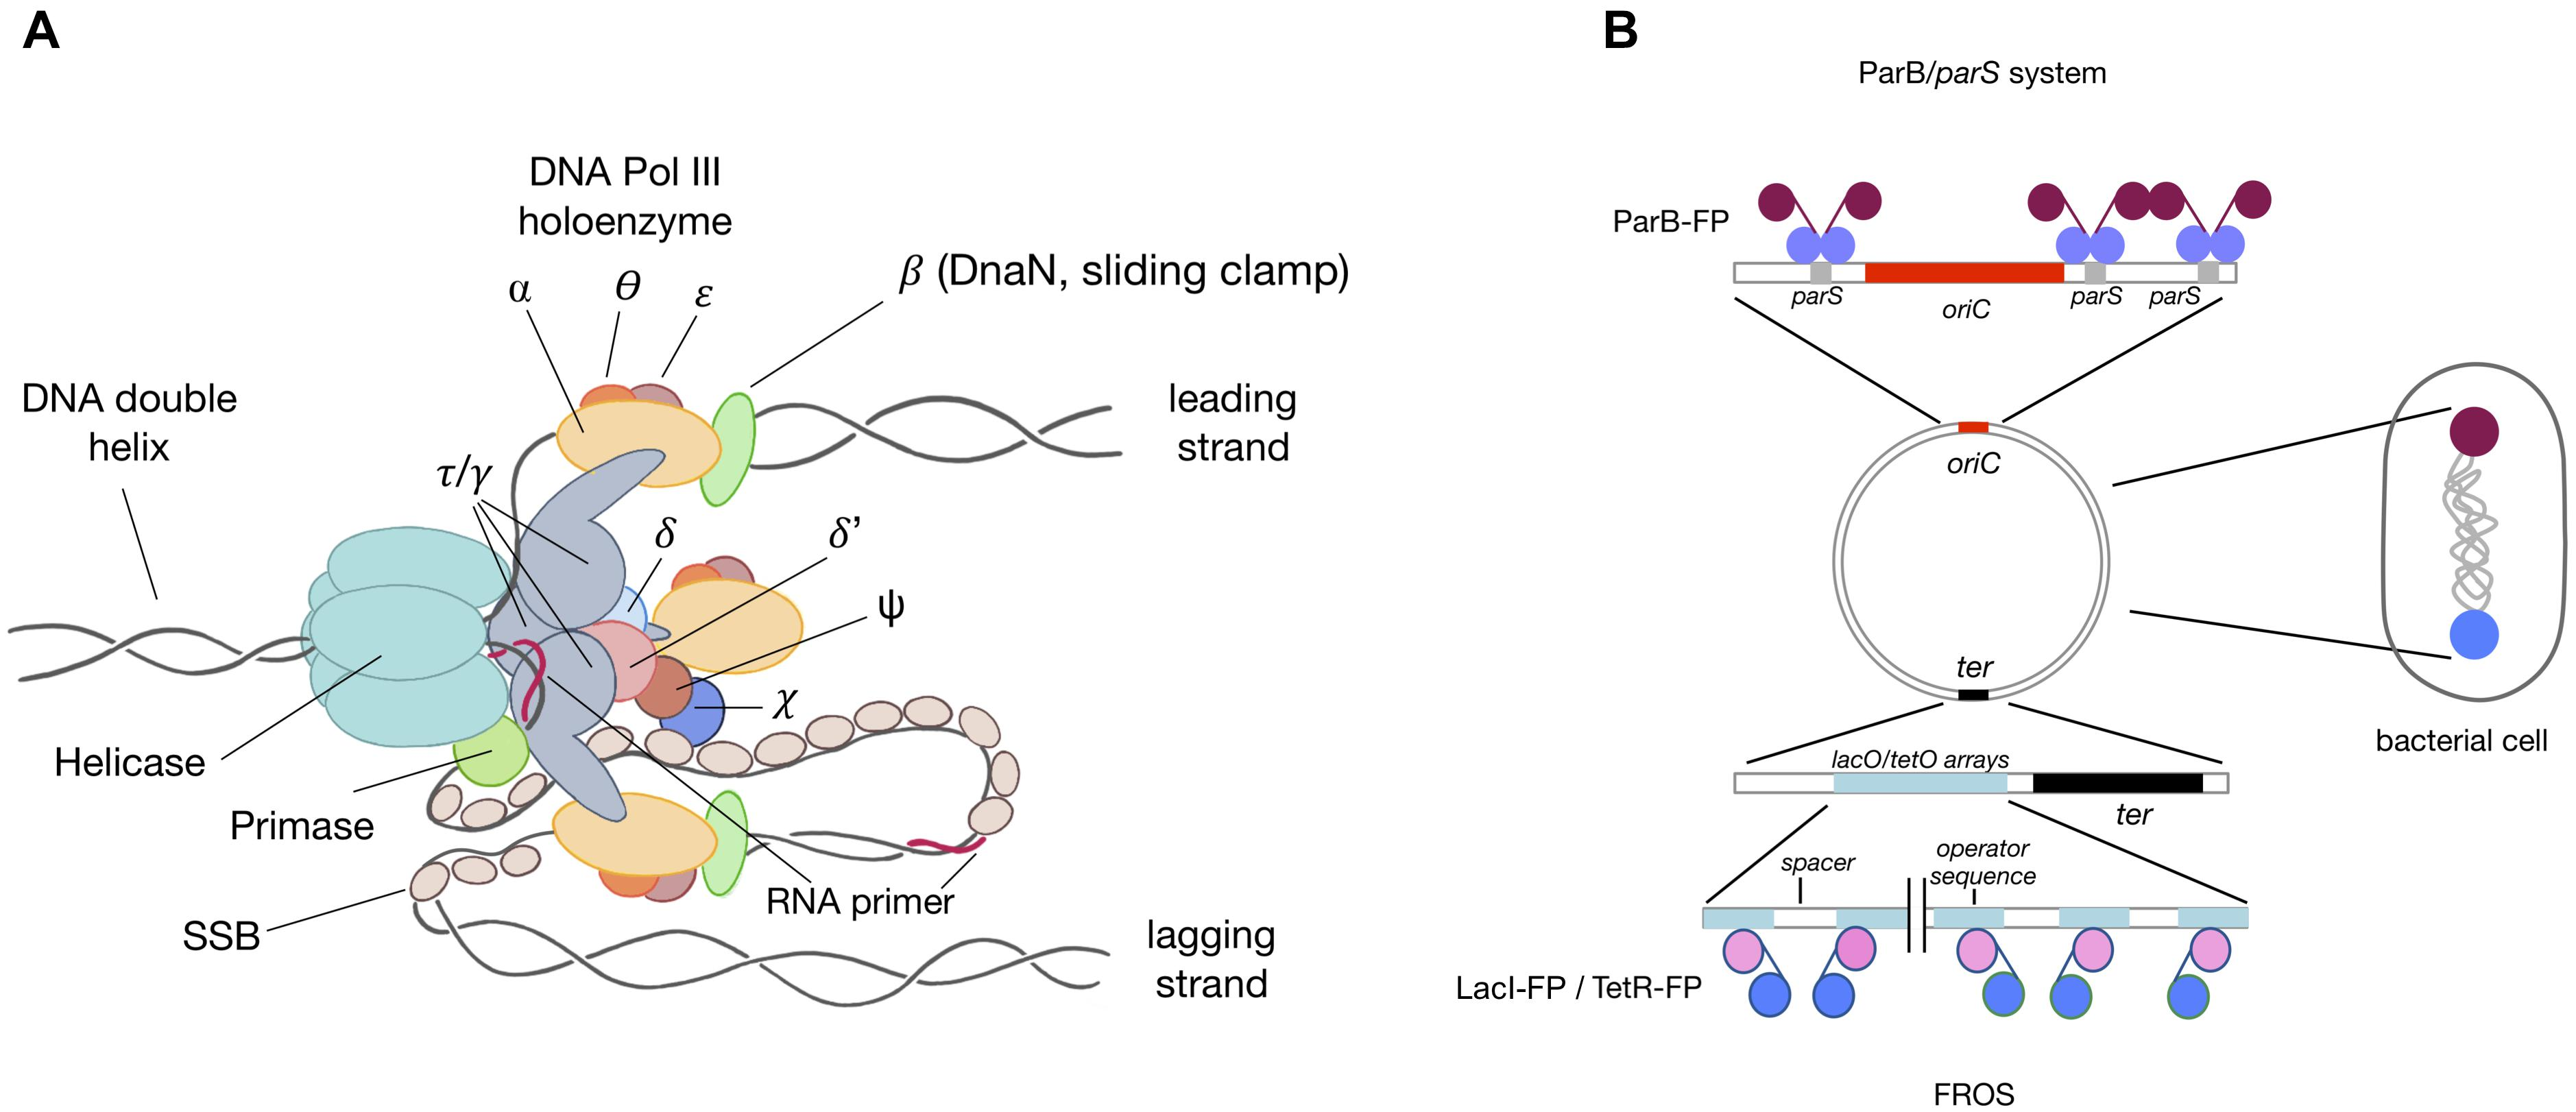 Frontiers | Where and When Bacterial Chromosome Replication